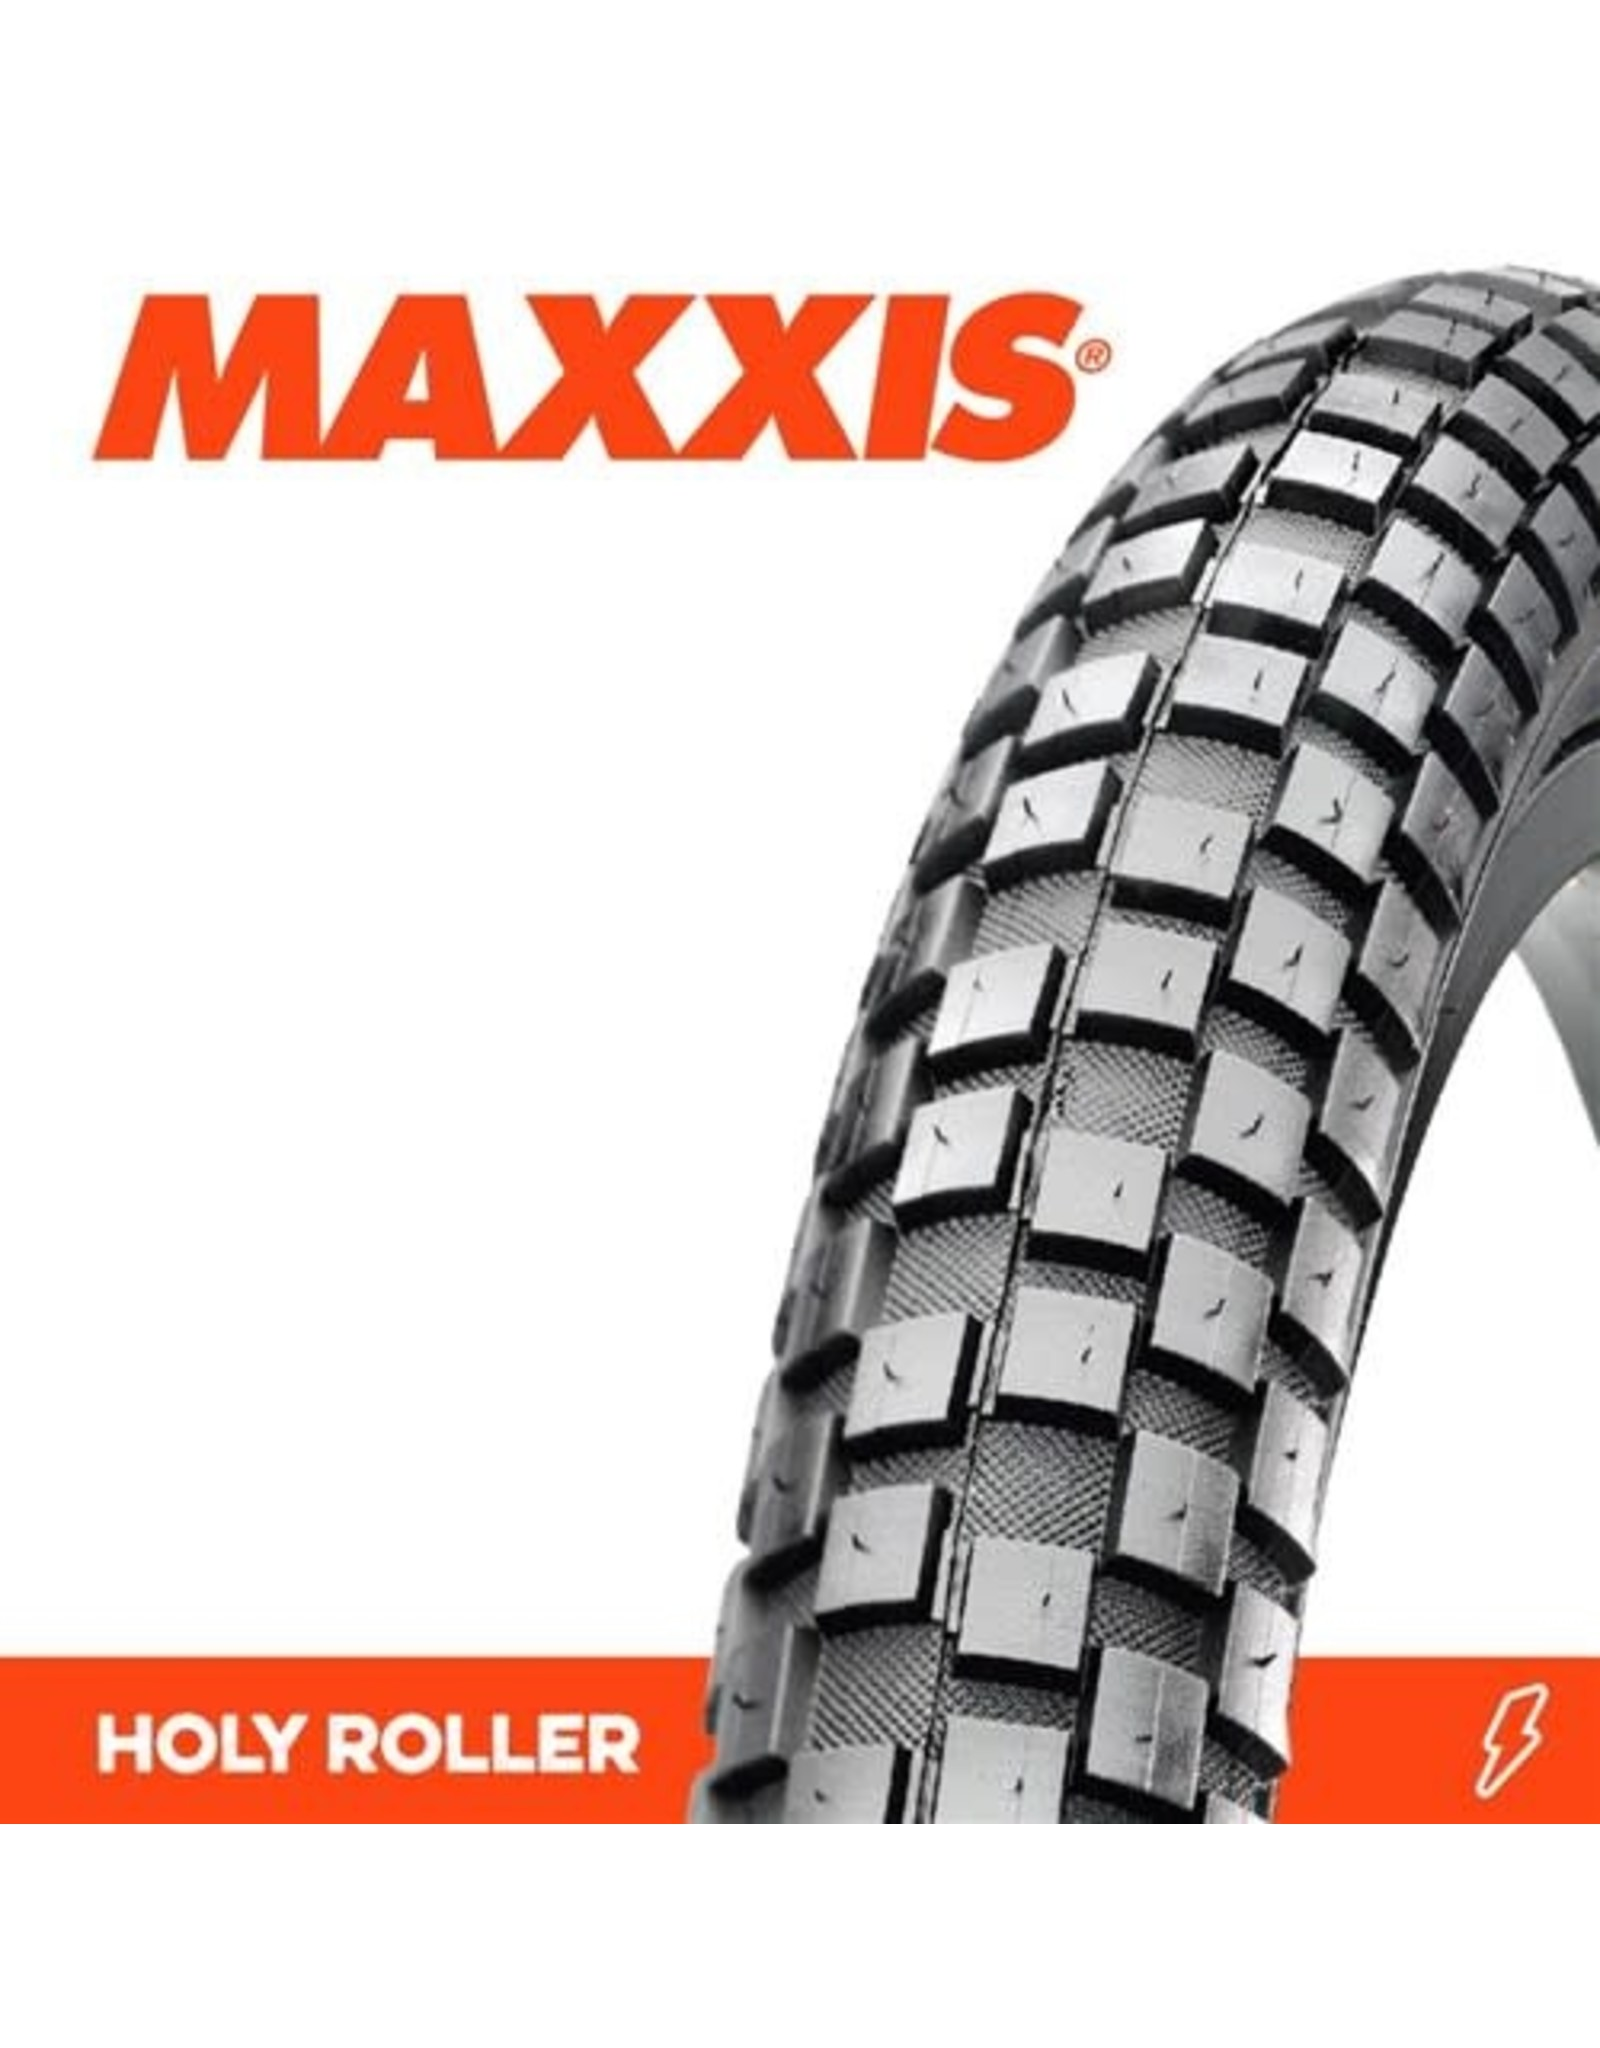 """MAXXIS MAXXIS HOLY ROLLER 26 X 2.20"""" WIRE 60 TPI TYRE"""